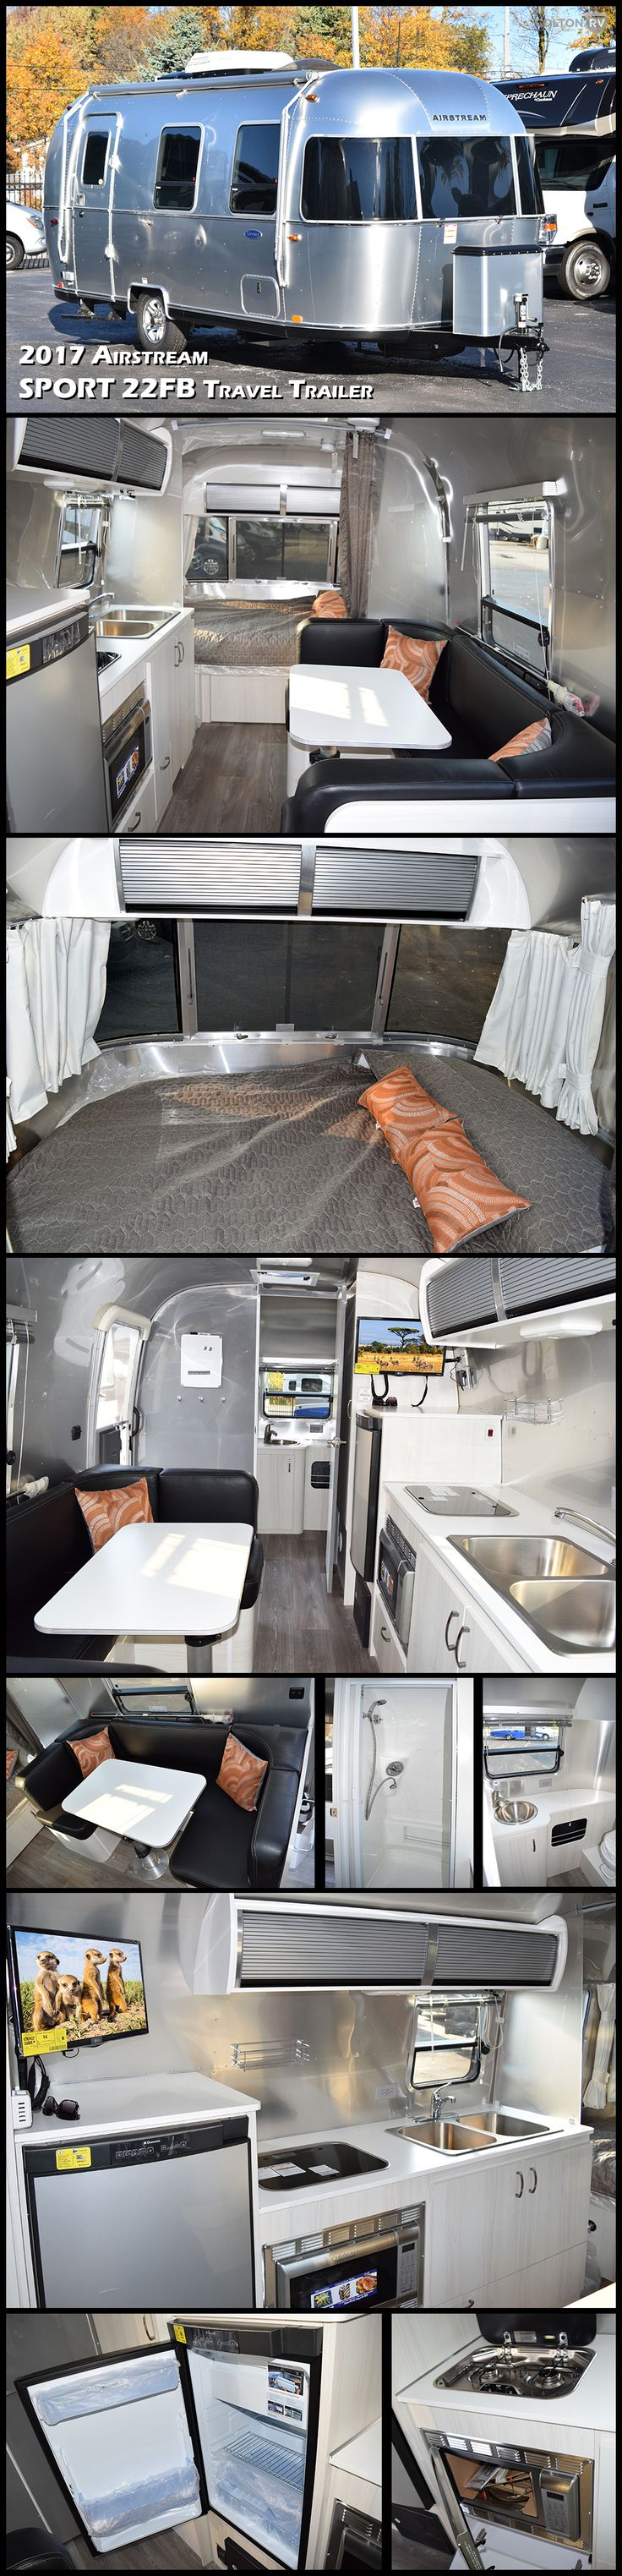 The ultra-towable 2017 Airstream Sport 22FB is a premium compact travel trailer that sets you free to hitch up and go, without leaving behind the comforts of home. Spacious yet fuel-efficient, the Sport is light enough to tow with an SUV, yet still packed with features including running water, a bathroom and shower, interior LED lights, a microwave and refrigerator, and even a range.